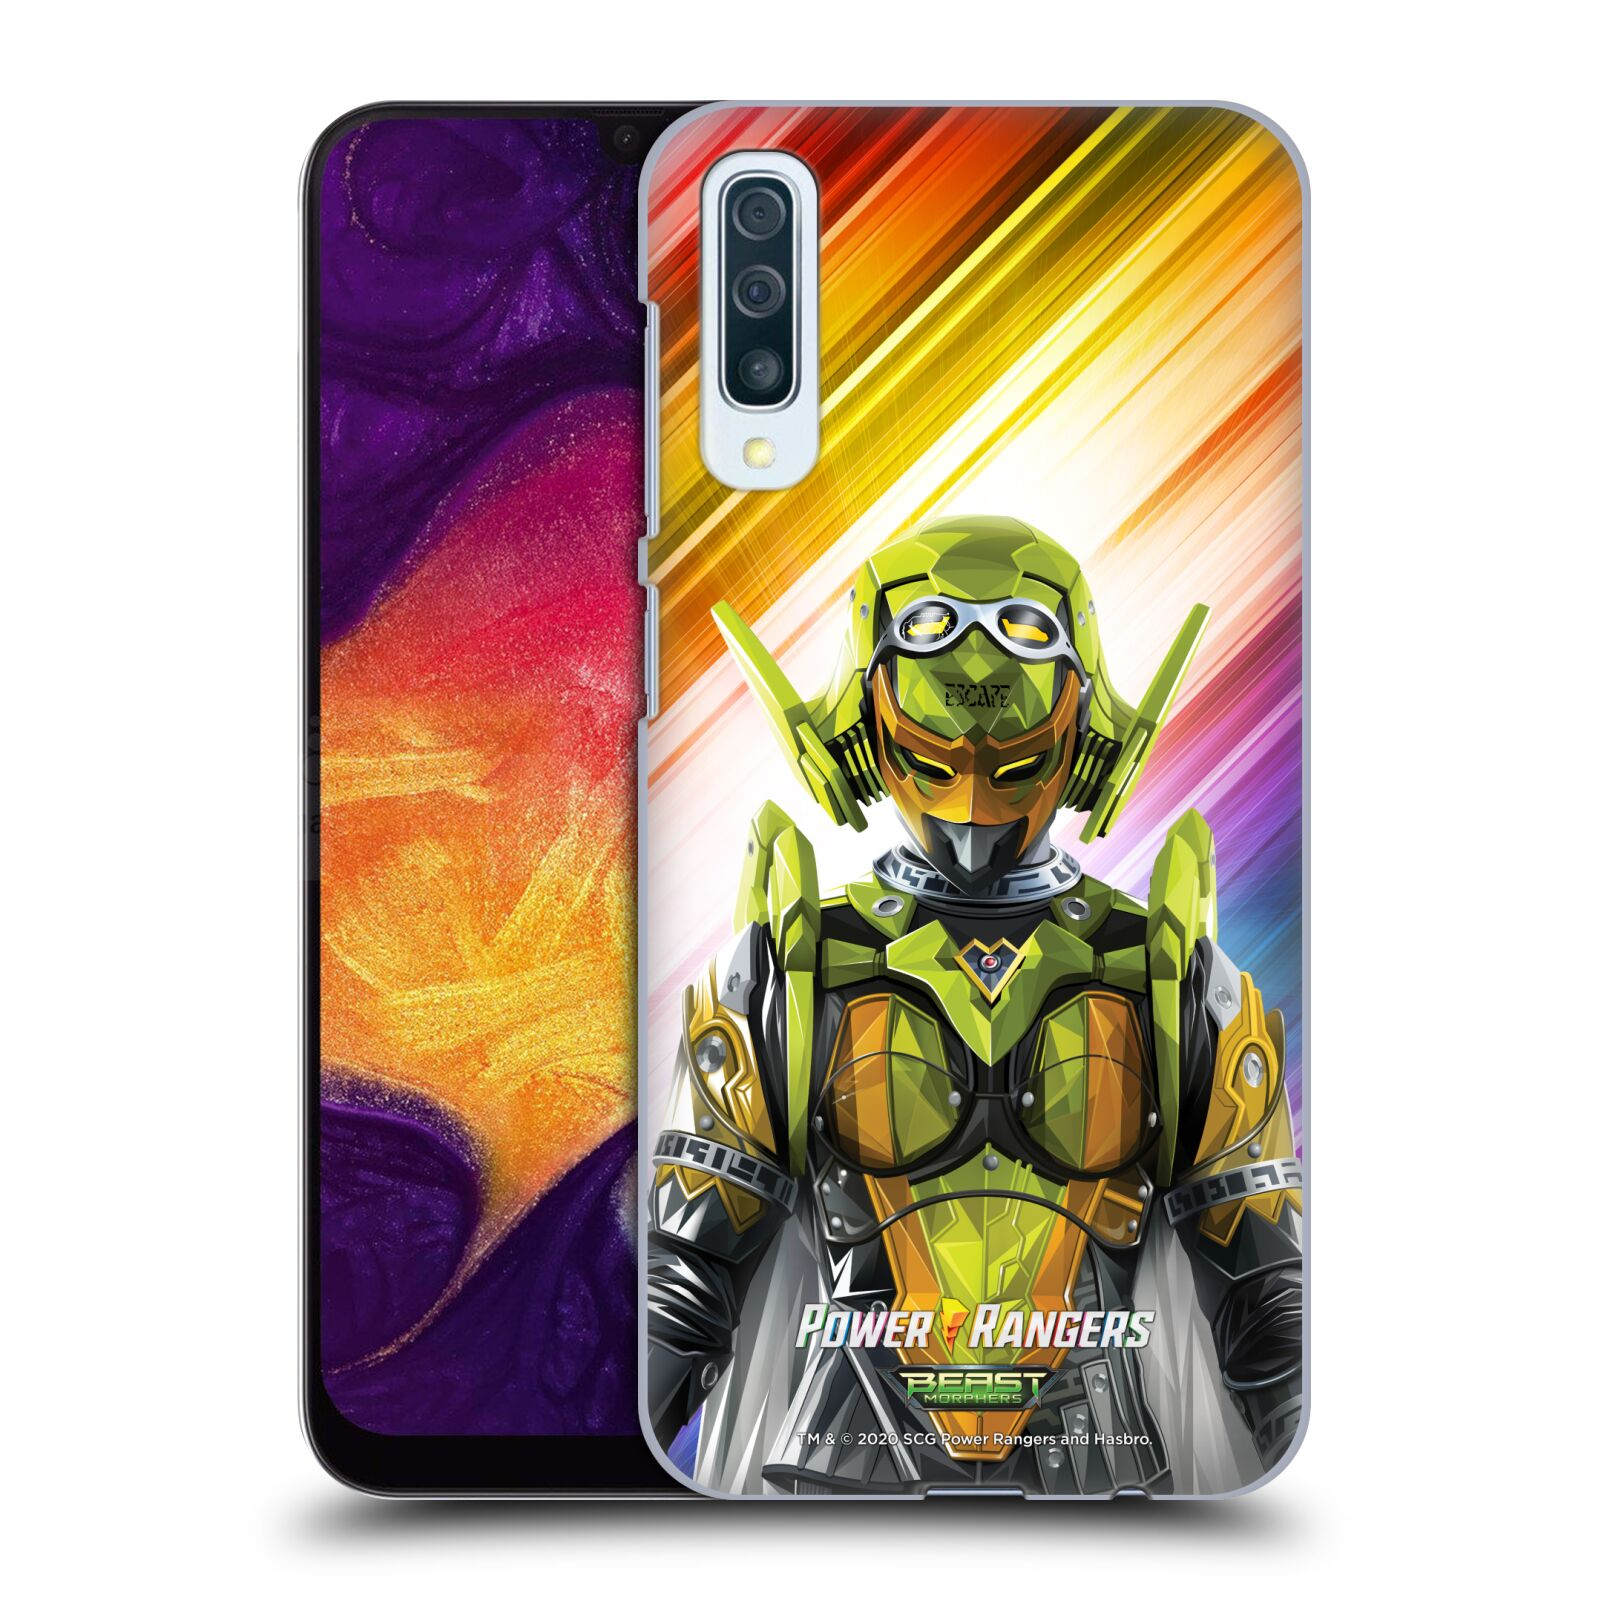 Official Power Rangers Beast Morphers Characters Roxy Case for Samsung Galaxy A50/A30s (2019)